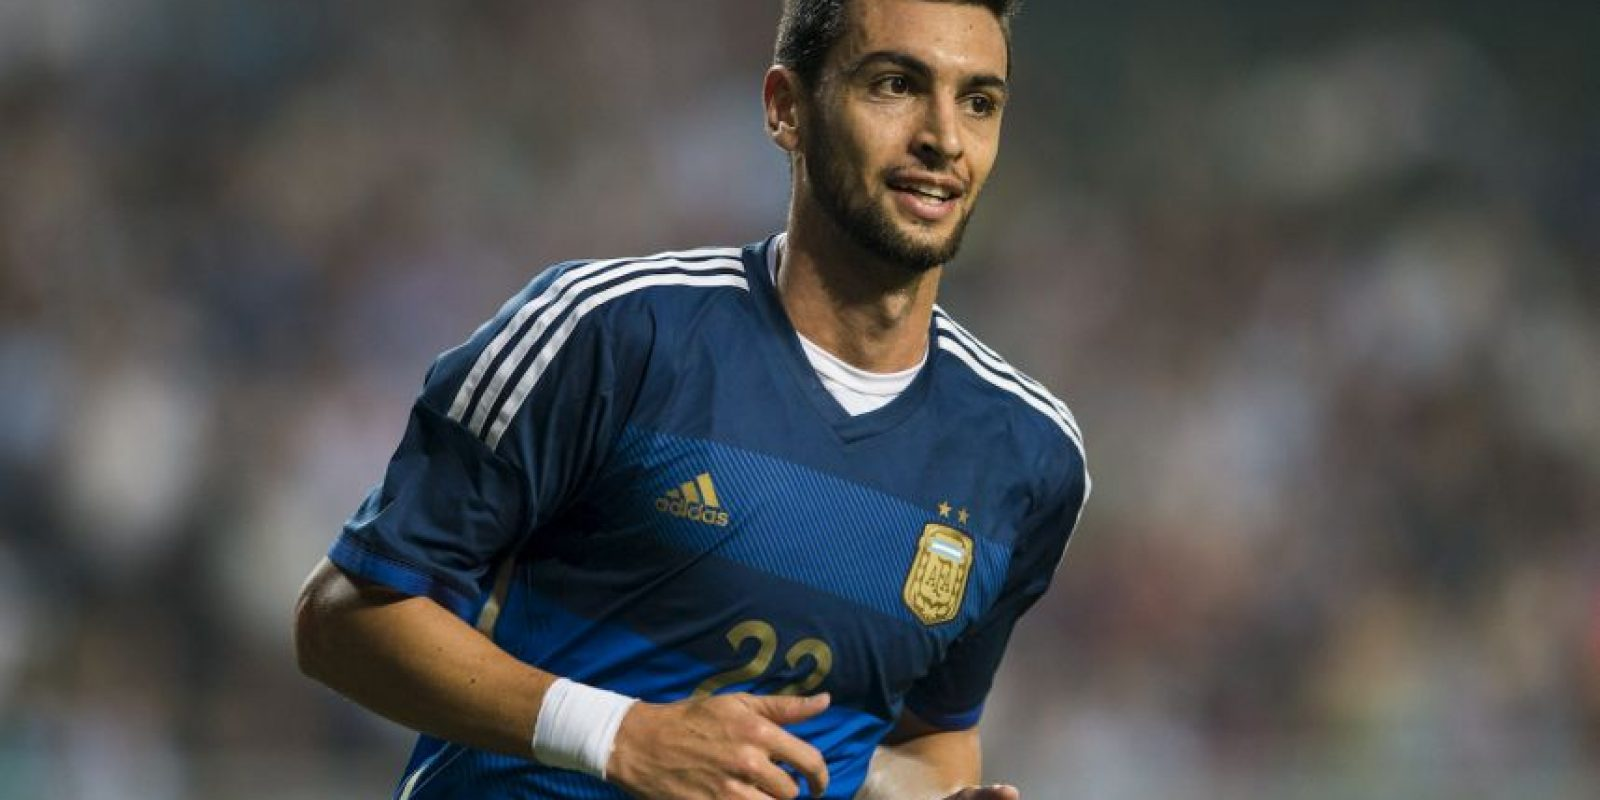 Javier Pastore – 20 de junio de 1989. Foto: Getty Images